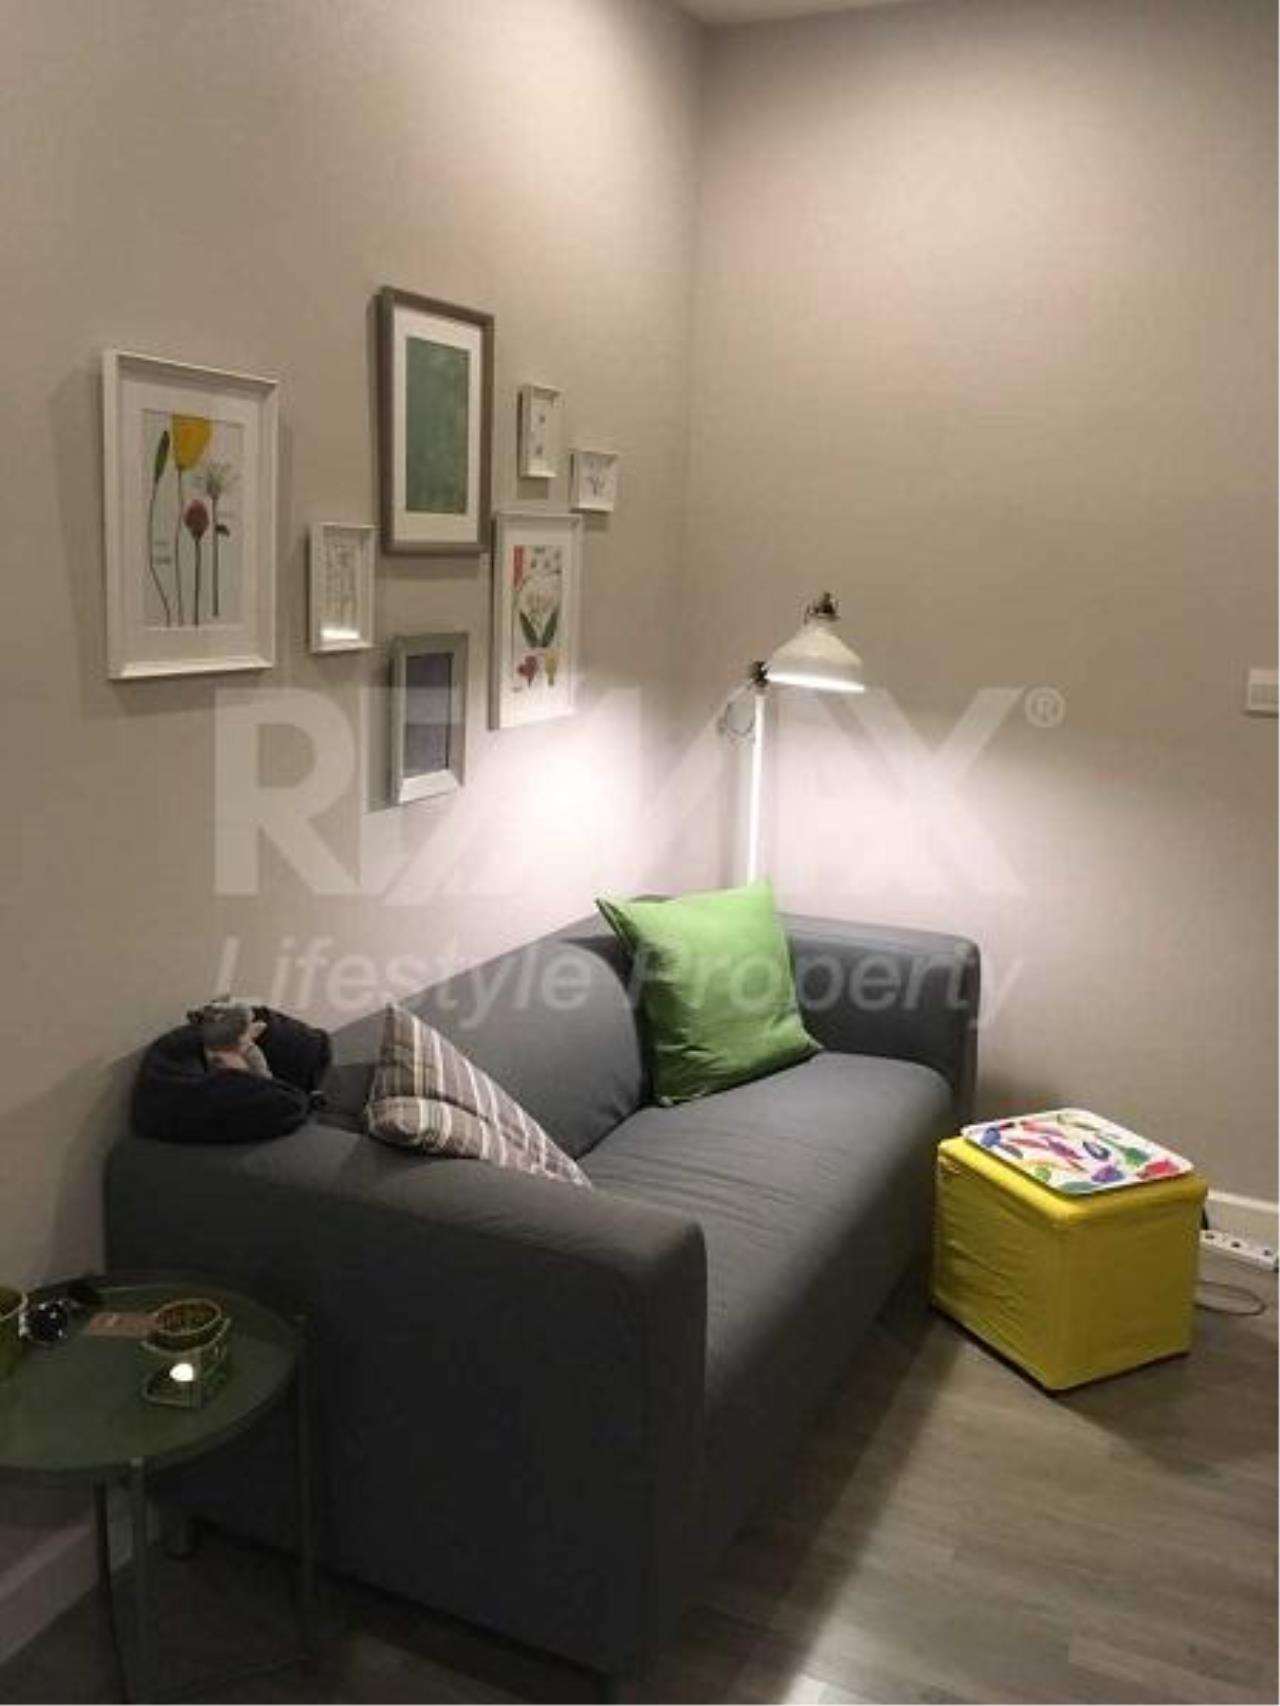 RE/MAX LifeStyle Property Agency's The Room Sathorn-TanonPun 13